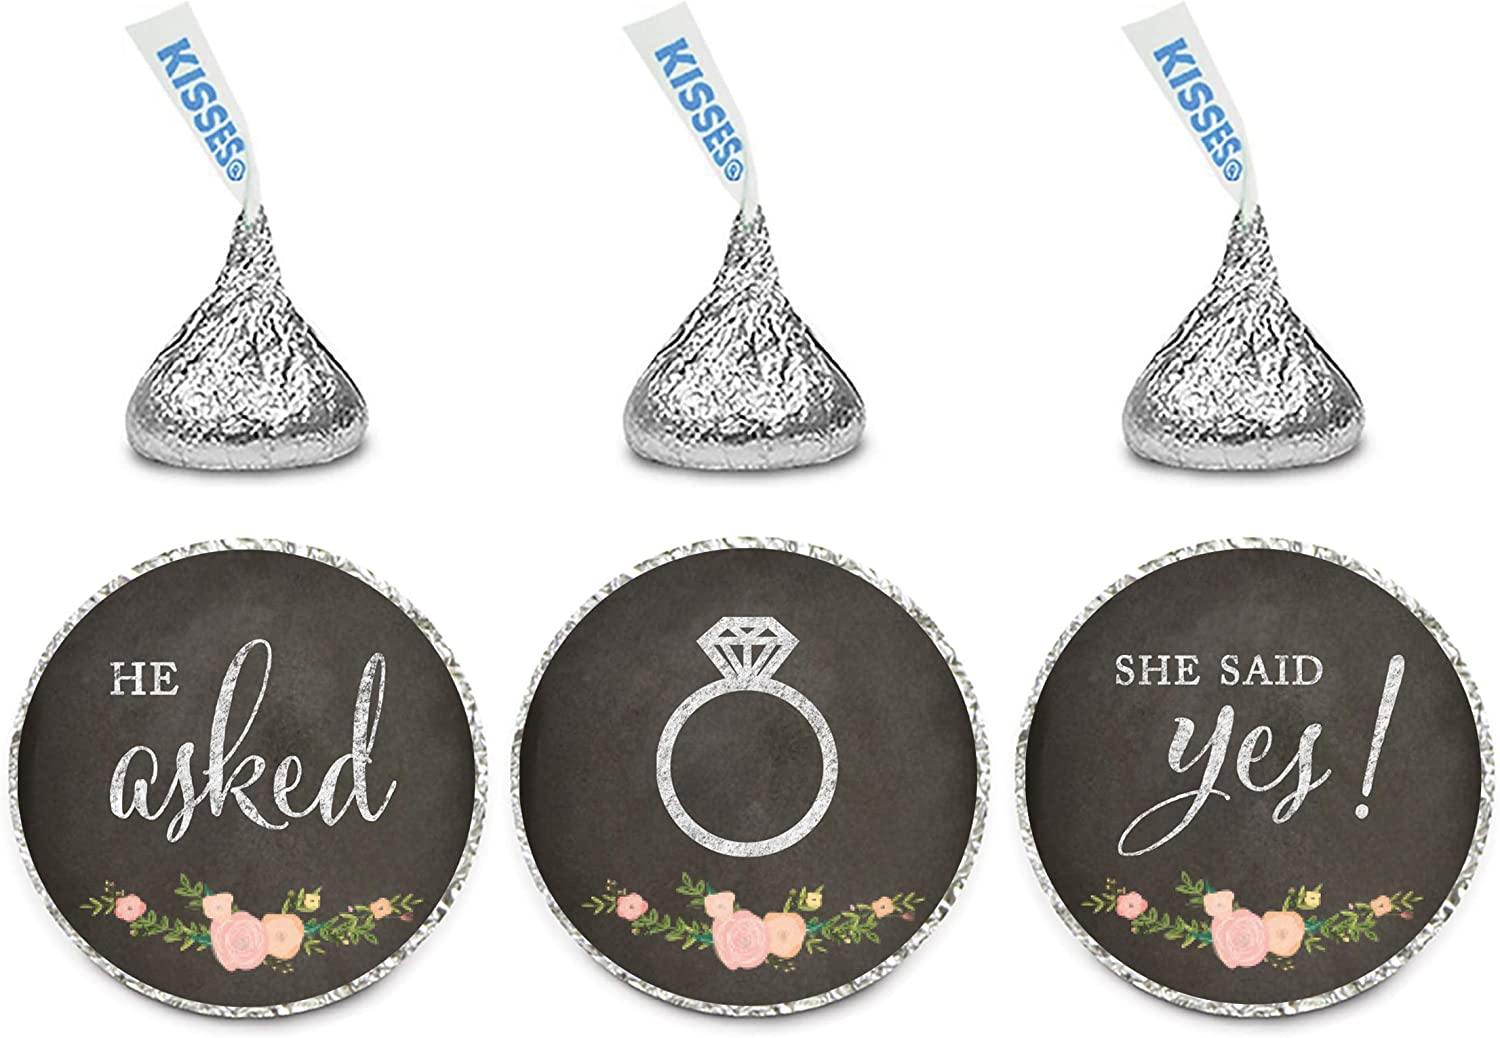 Andaz Press Chocolate Drop Labels Stickers, Wedding He Asked She Said Yes!, Chalkboard Floral Roses, 216-Pack, for Bridal Shower Engagement Kisses Party Favors Decor